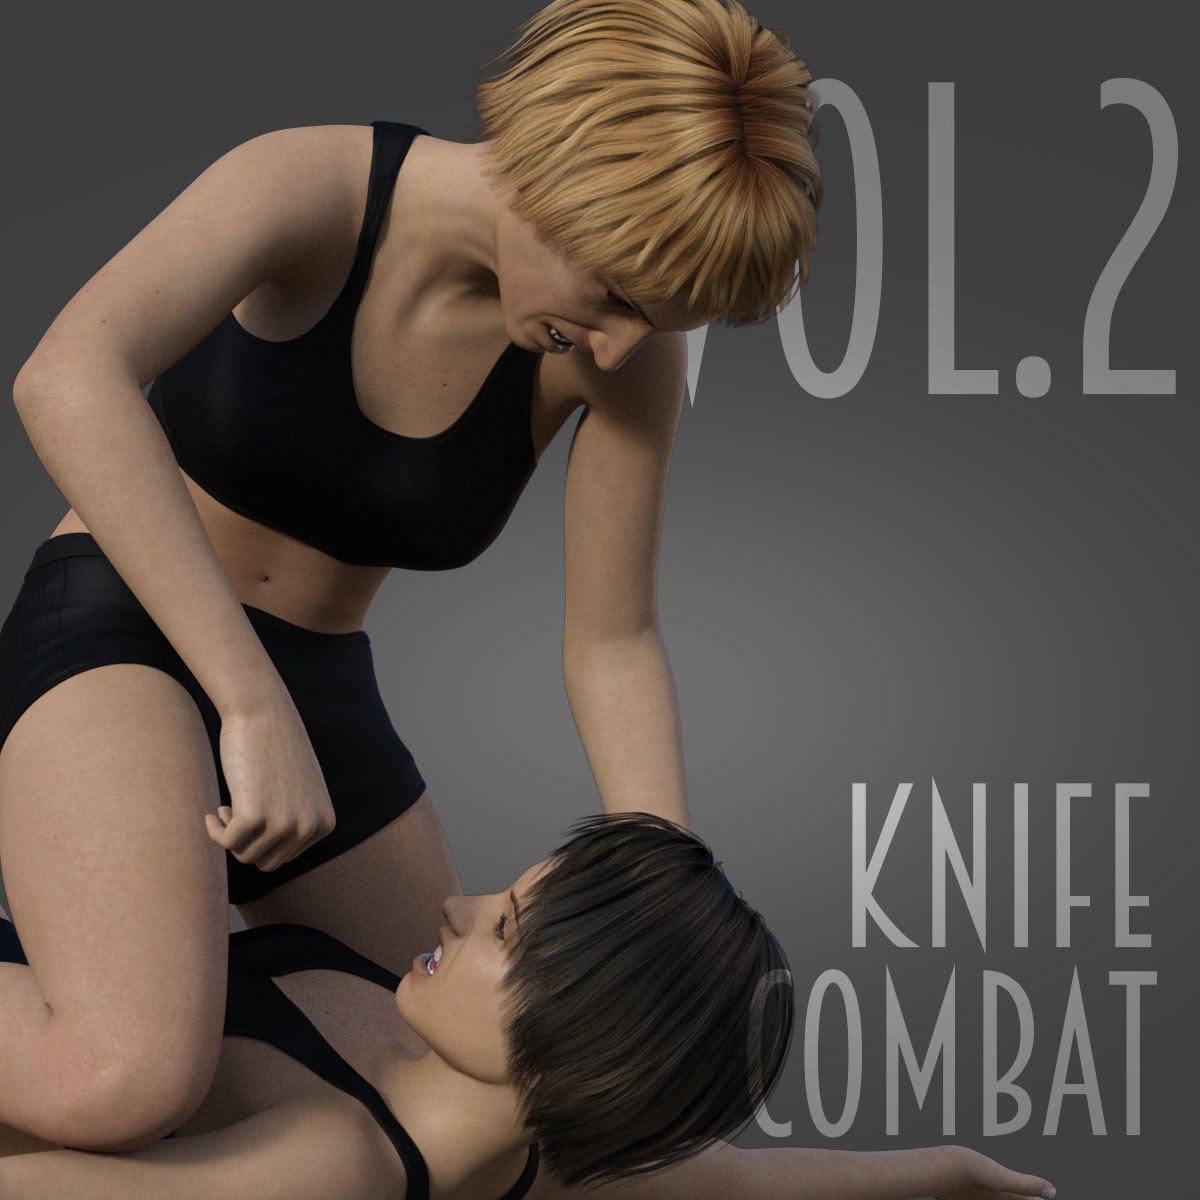 Knife Combat vol.2 for Genesis 8 Female by PainMD